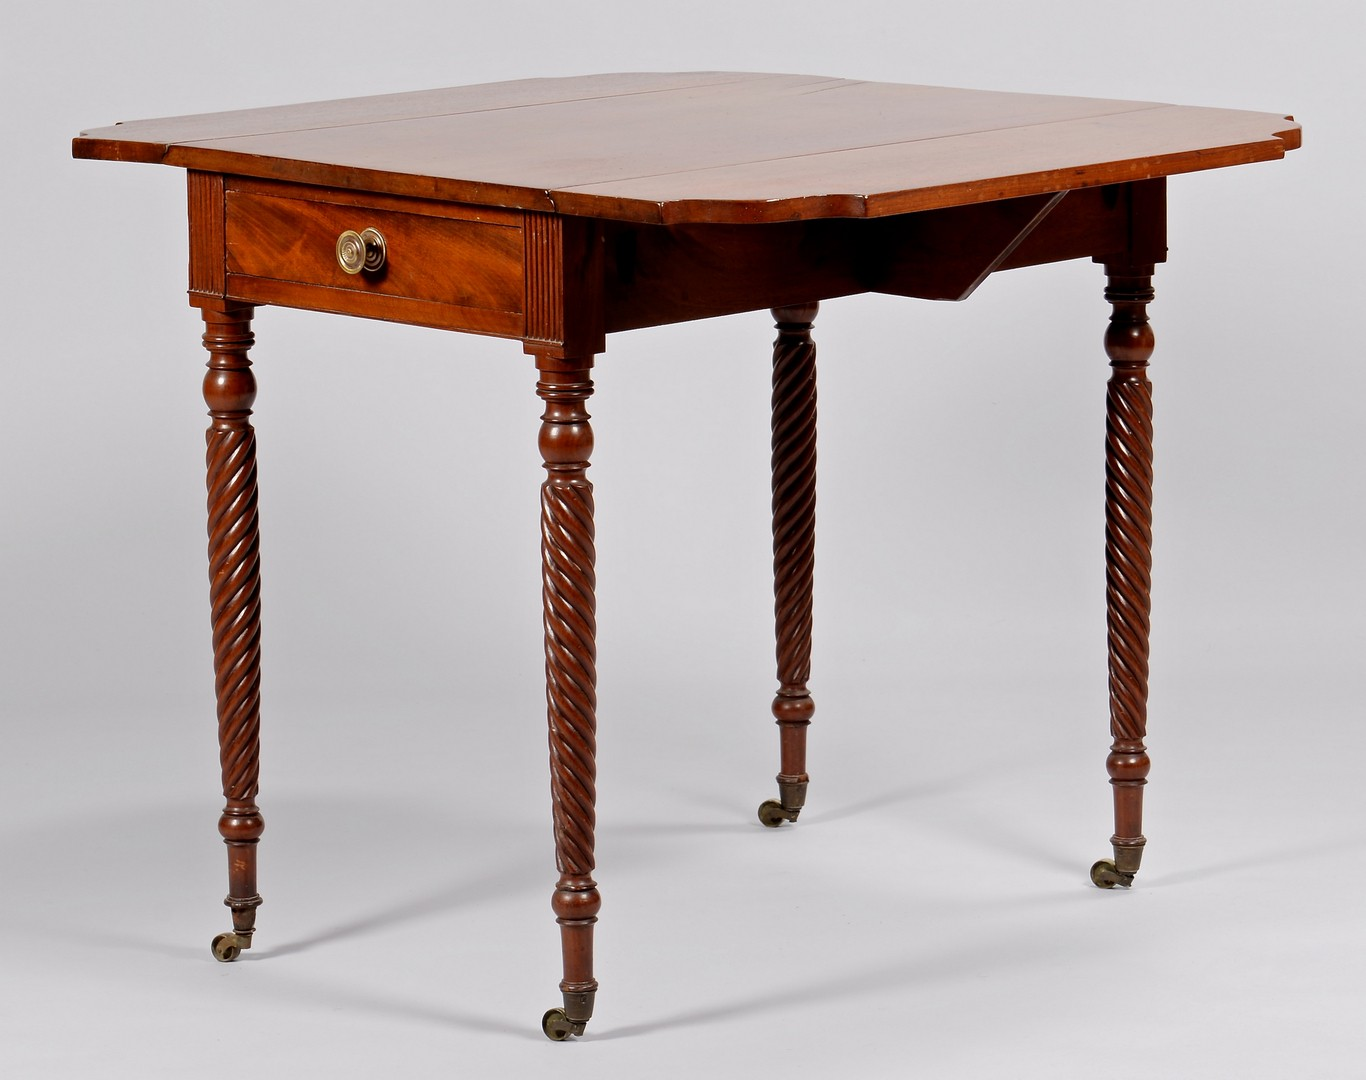 Lot 308: Southern Pembroke Table with Spiral Tapered Legs,